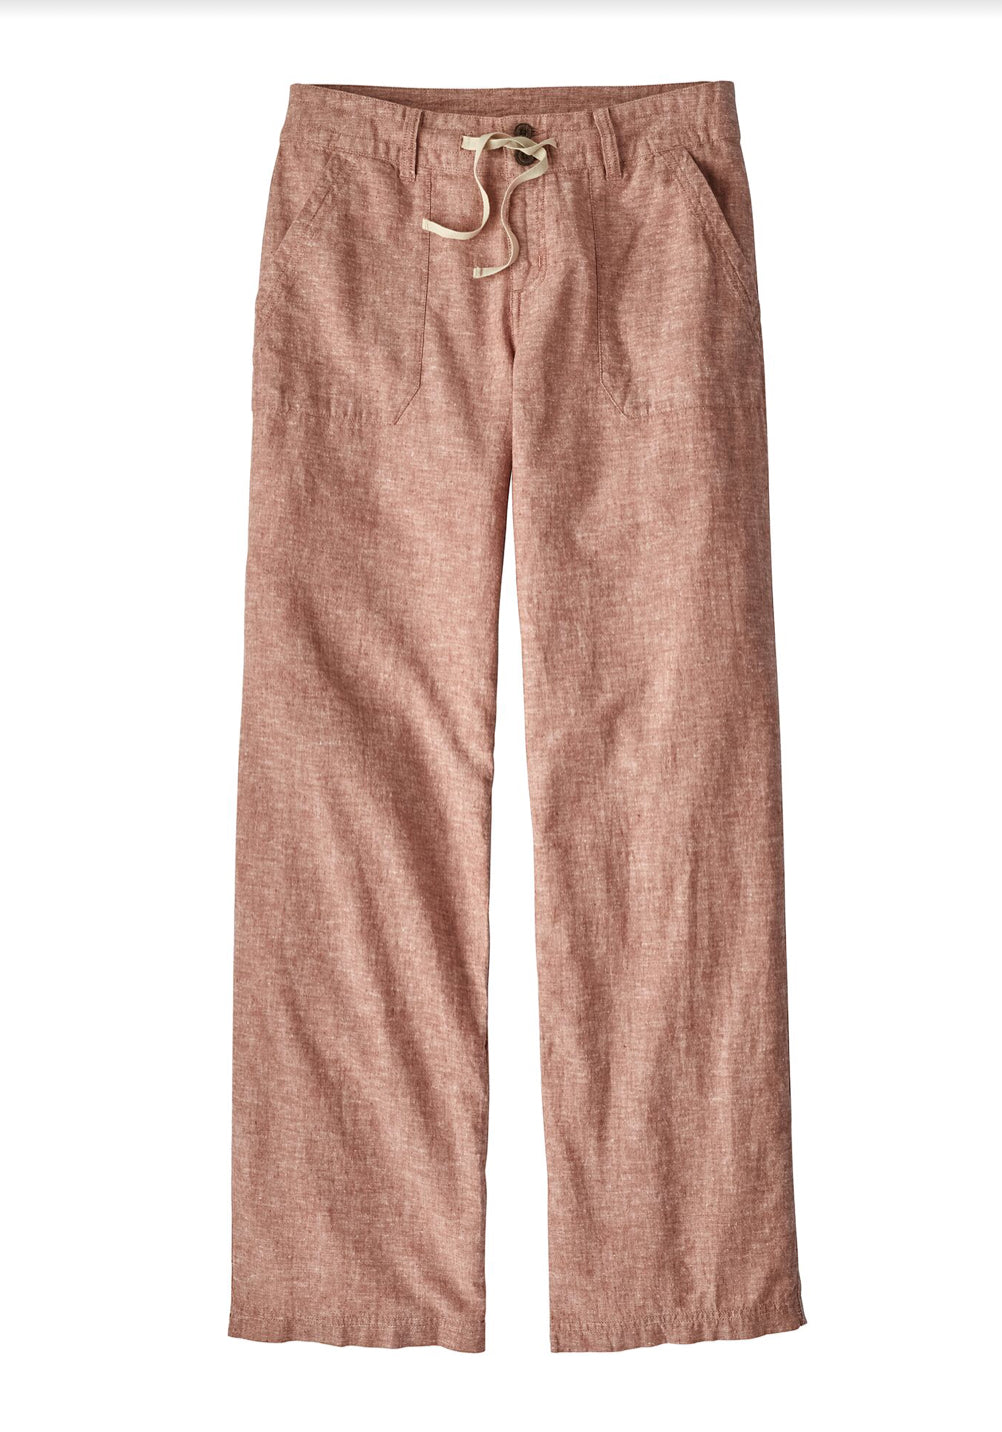 price reduced reputable site buy online Patagonia Women's Island Hemp Pants (Short) - Canyon Brown ...